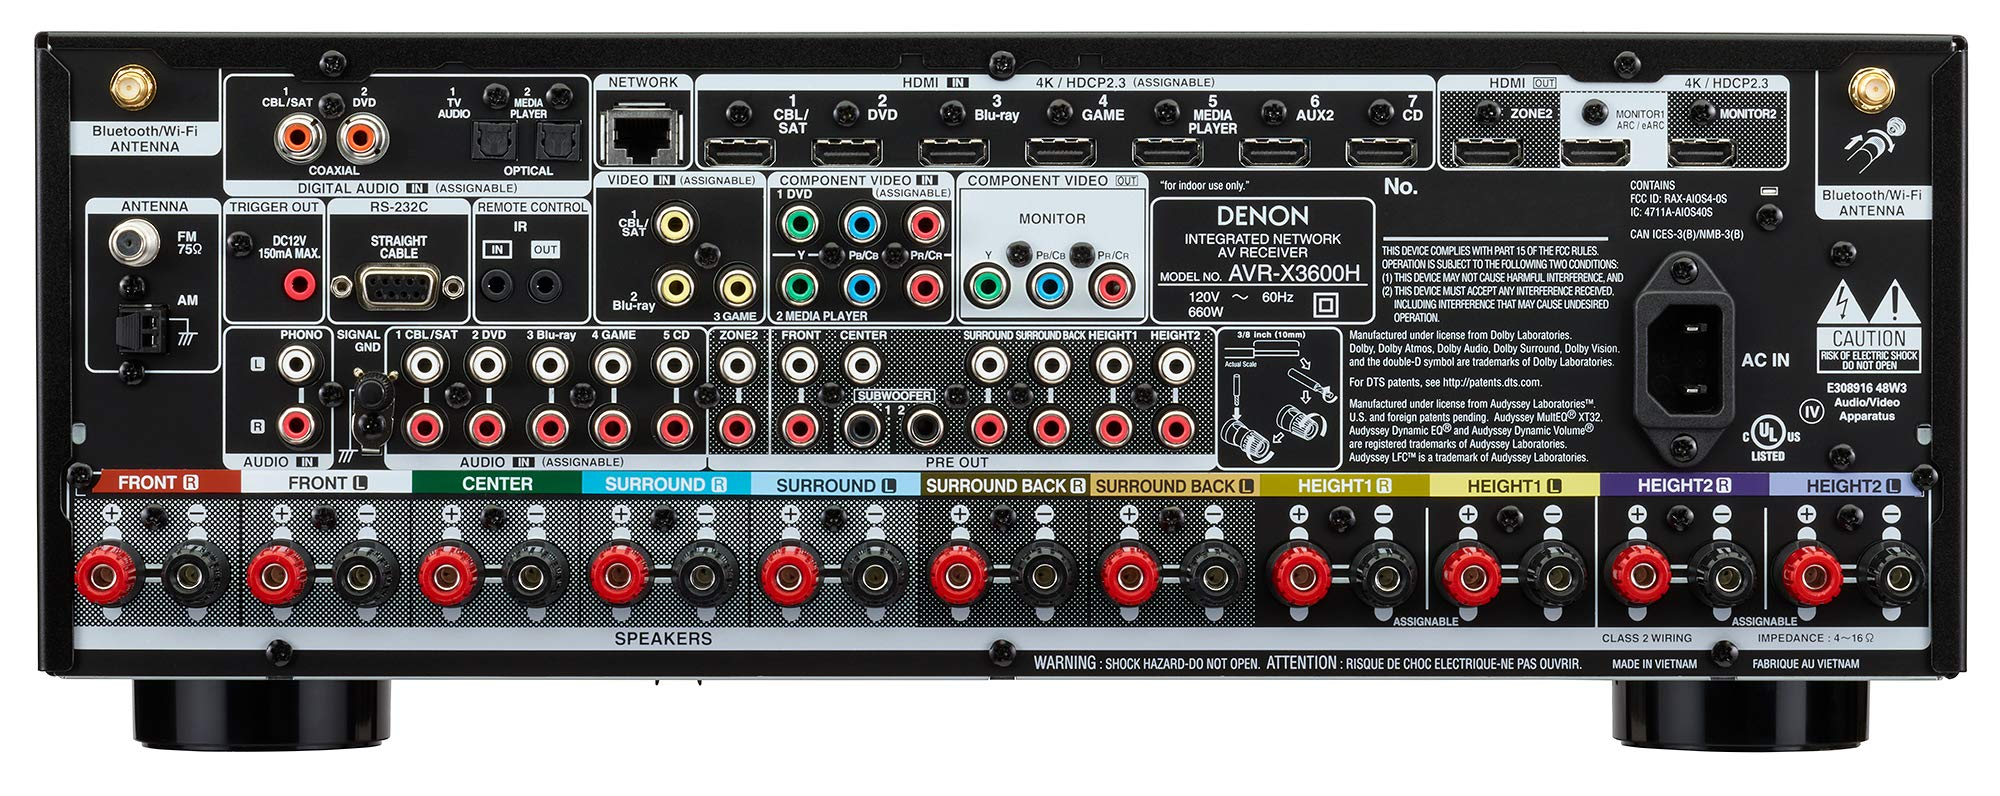 Denon AVR-X3600H UHD AV Receiver | 2019 Model | 9 2 Channel, 105W Each |  NEW Virtual Height Elevation, Dual Subwoofer Outputs | Home Automation